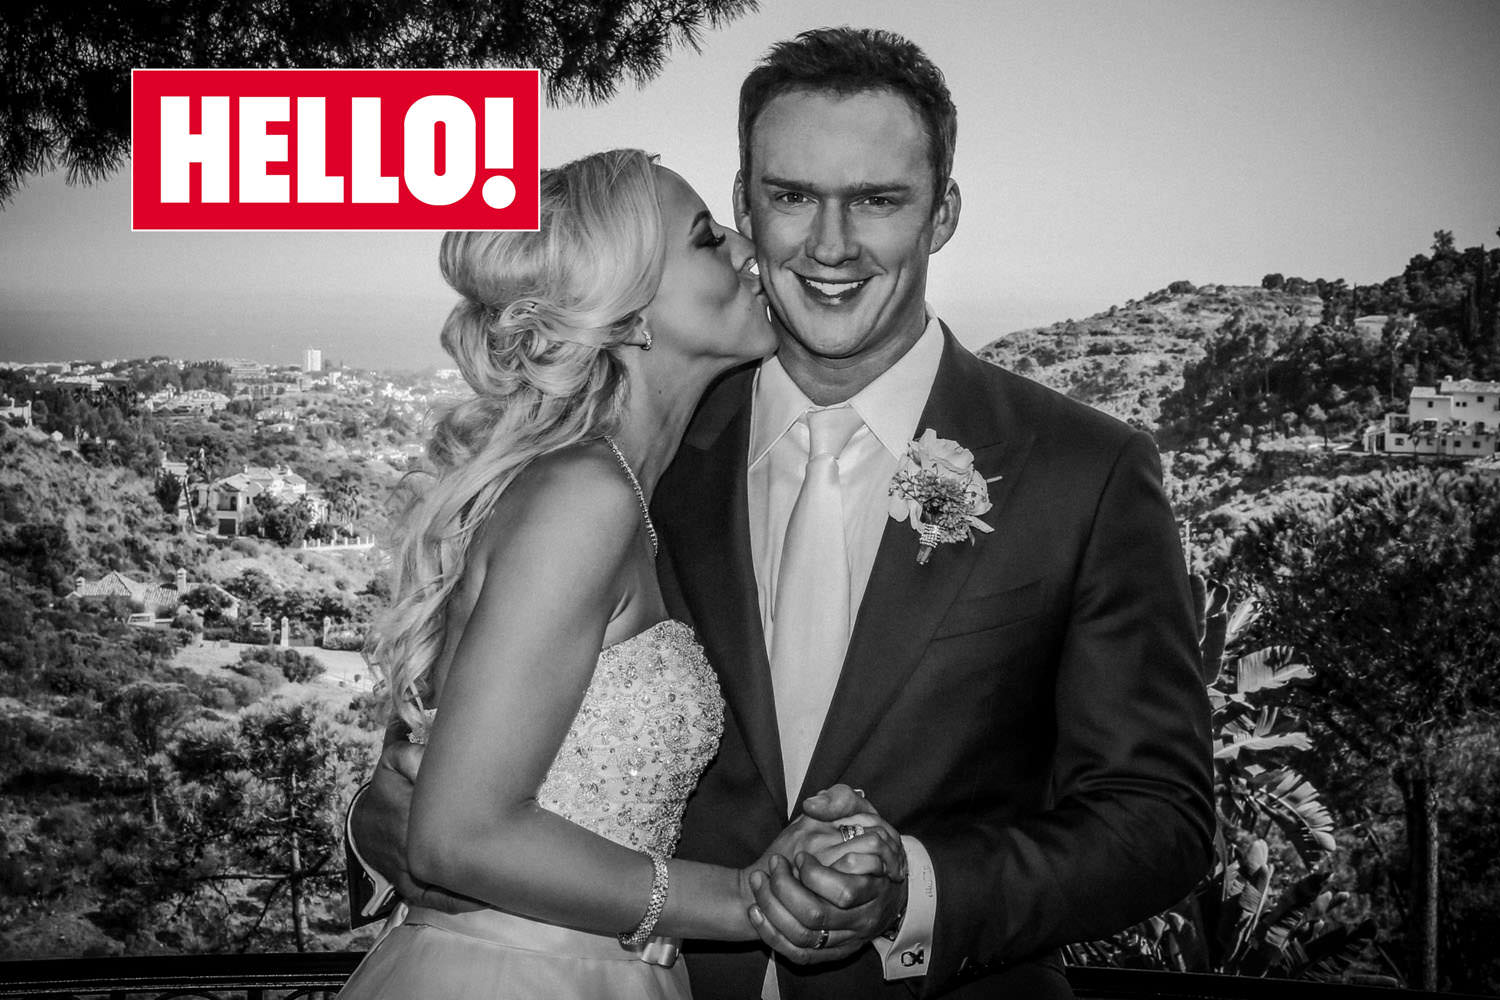 Celebrity wedding feature, Russell Watson Hello! Photographer Wes simpson